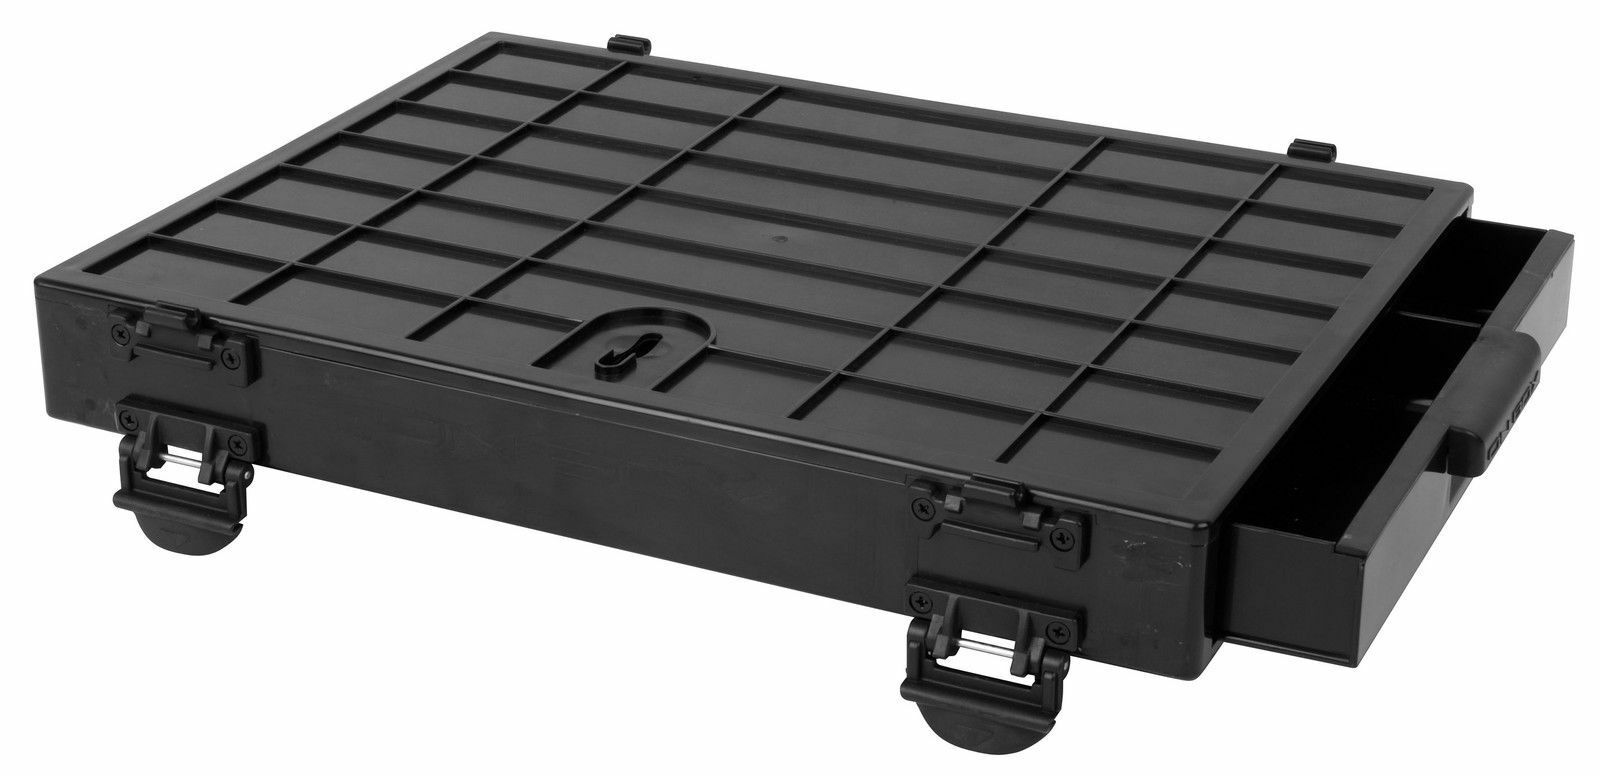 Preston Innovations stazione Space XS DEEP SIDE 40mm Cassetto Unità Seatbox